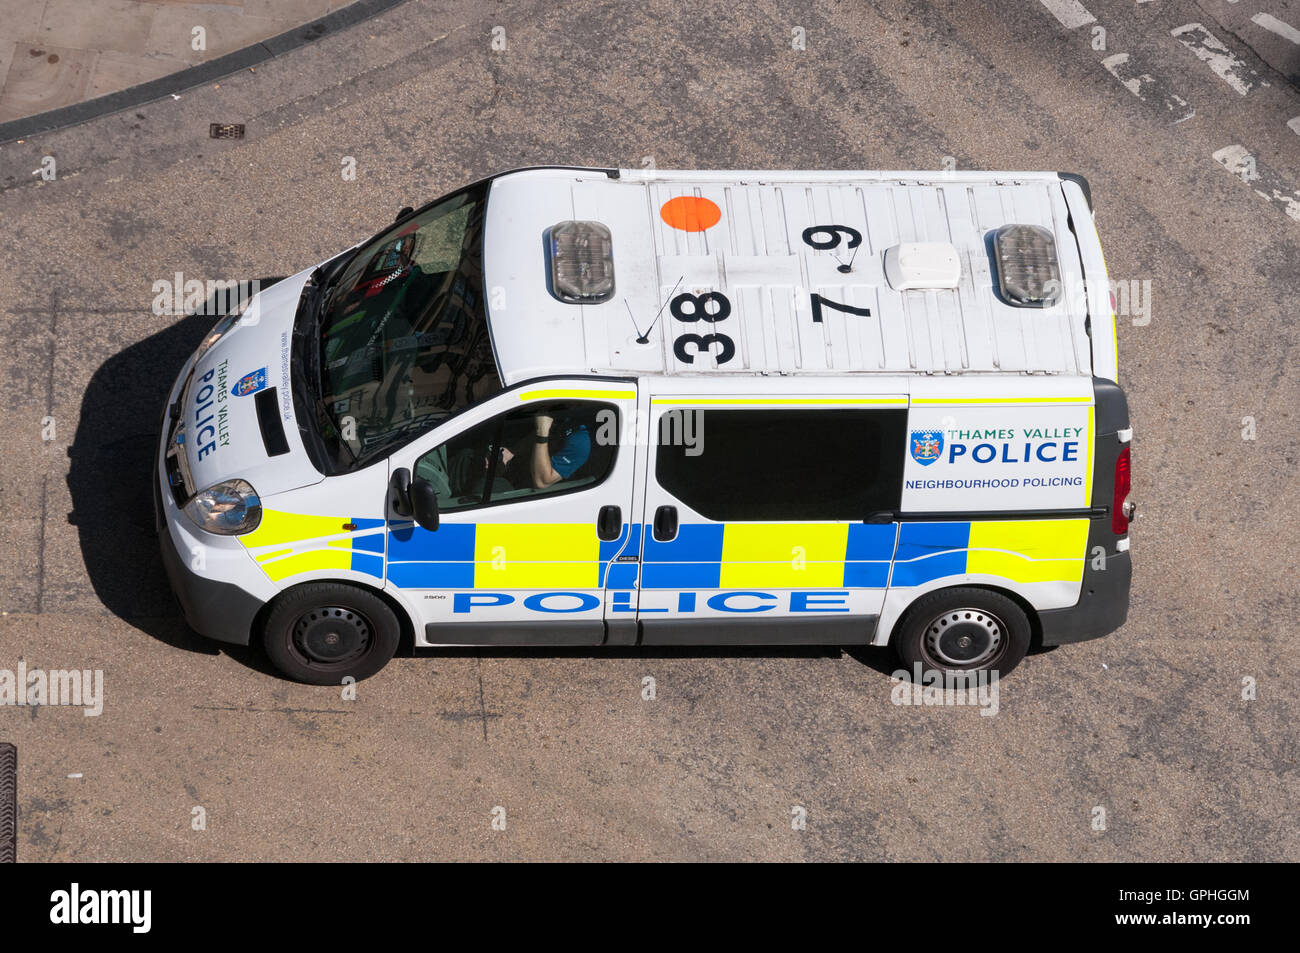 Police van viewed from above - Stock Image